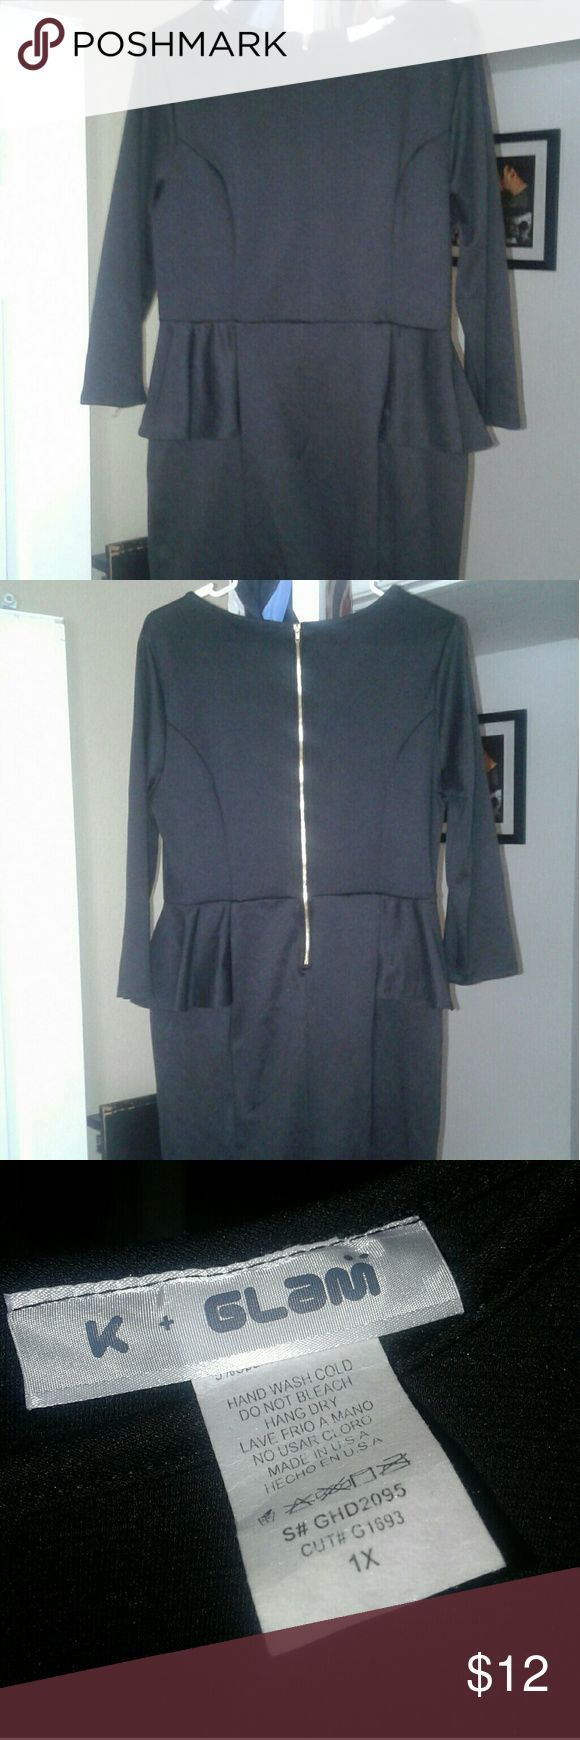 NWOT Plus Size Black Peplum Dress 1X NWOT purchased secondhand,  no flaws. Black peplum dress, 3/4 sleeve, thicker material but soft with some stretch. Zippered detail back.  Size 1X K+Glam Dresses